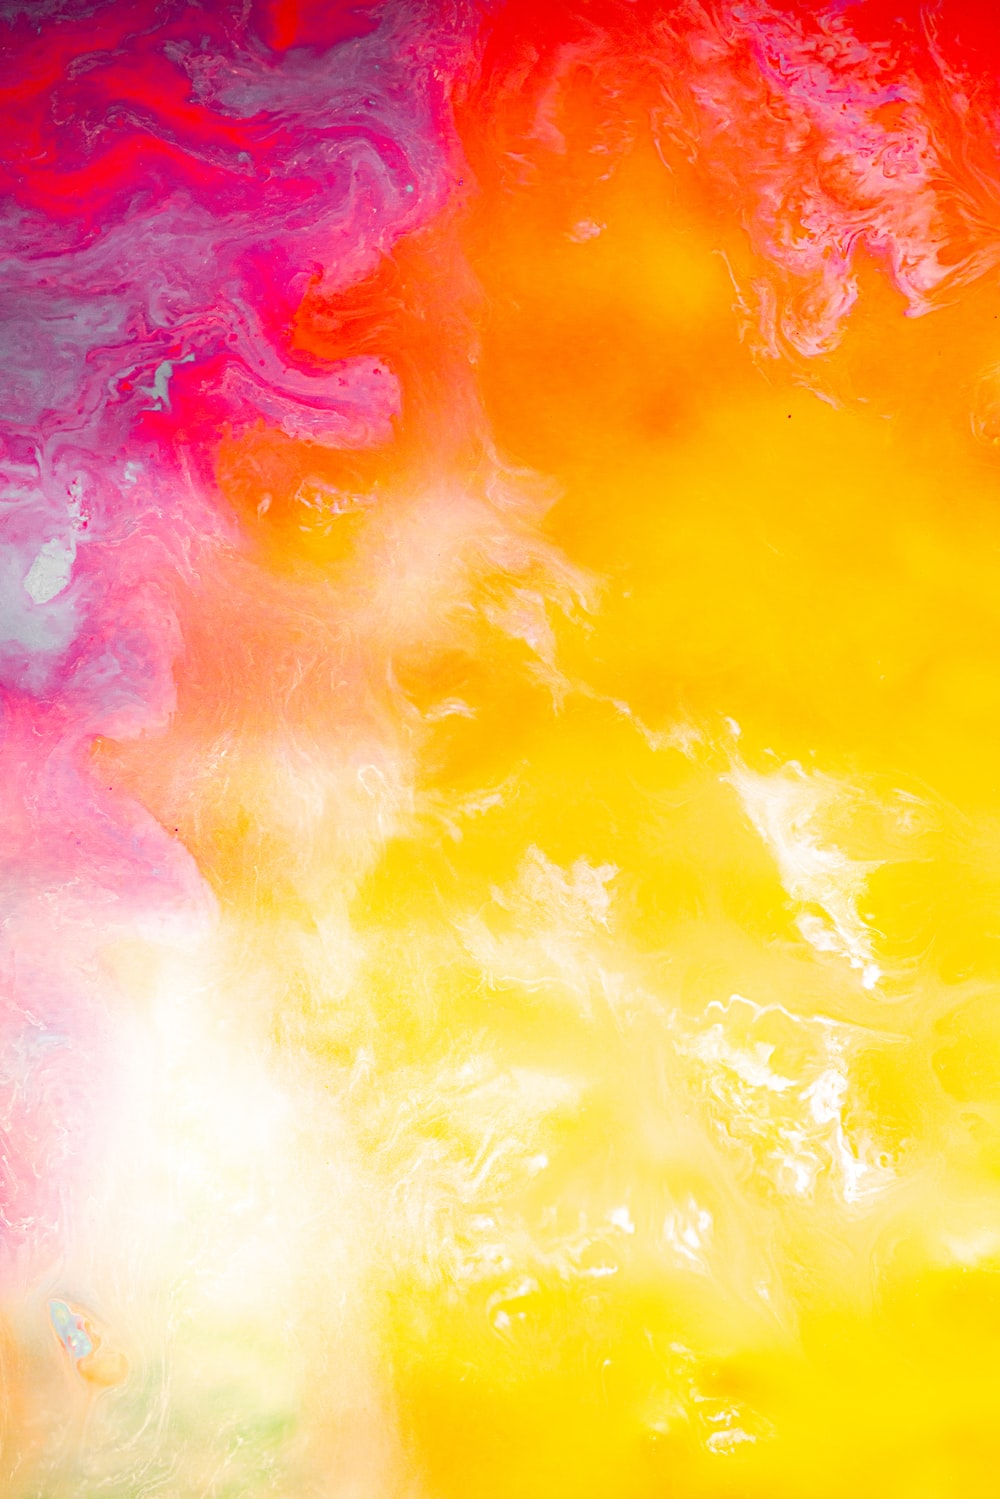 yellow pink and white abstract painting